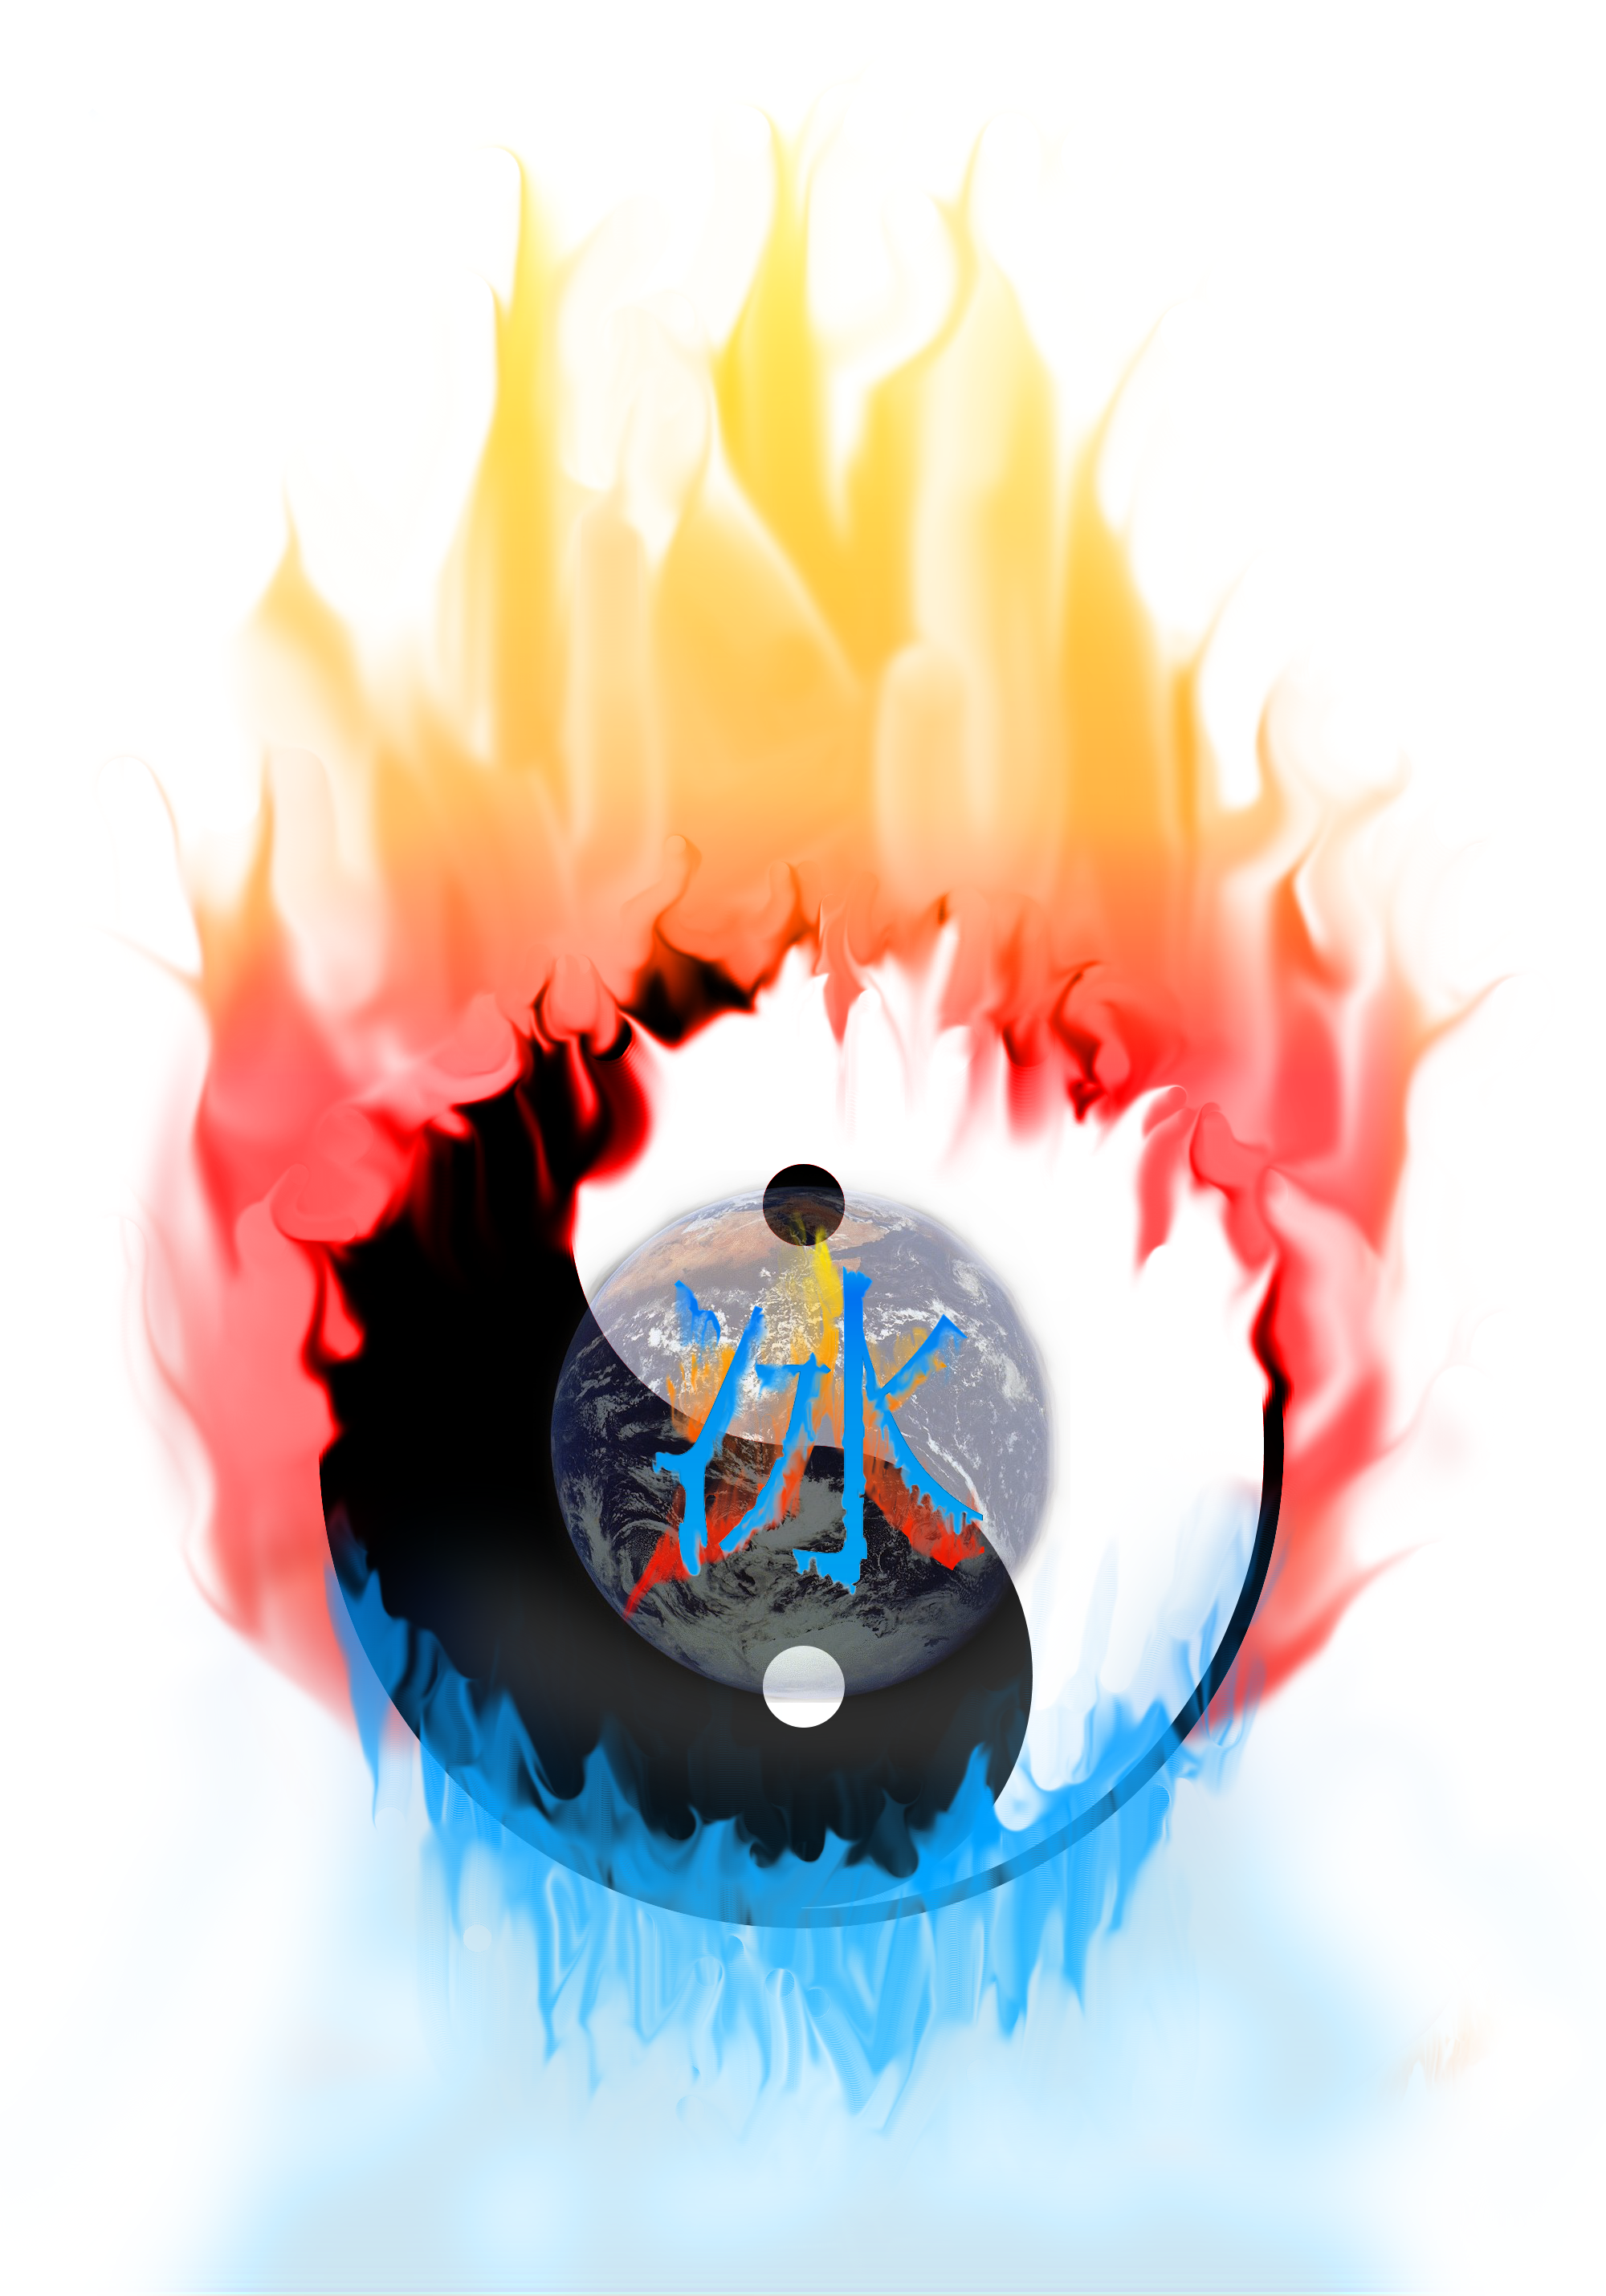 Yinyang fire and ice by scobbo on deviantart for Fire and ice tattoo shop